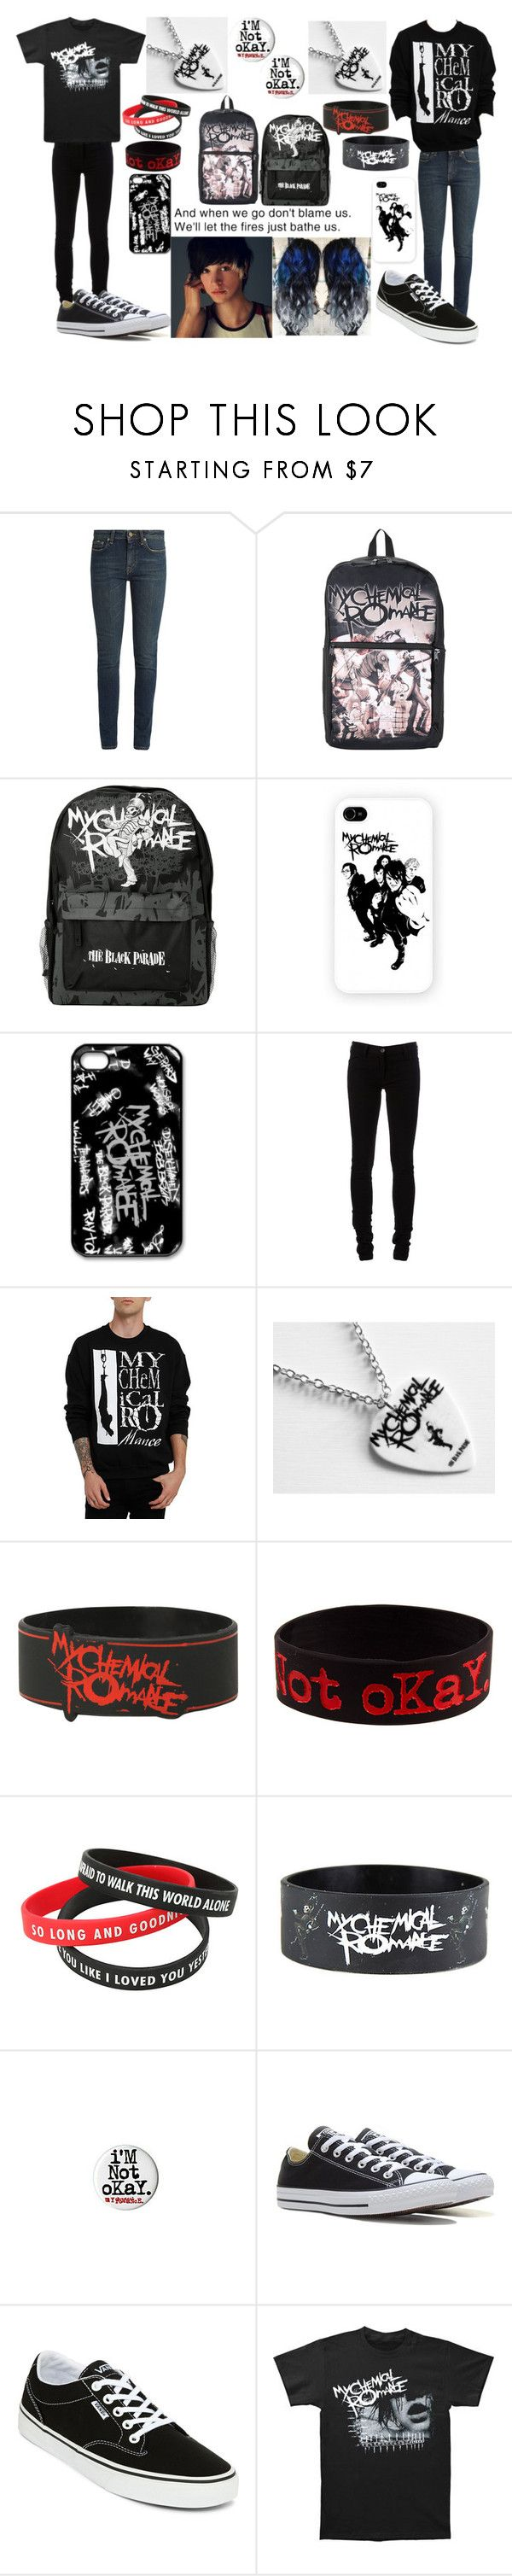 """84174fcd27a0628362b31b5ee371600a - """"My Chemical Romance (Guy and Girl)"""" by dino-satan666 ❤ liked on Polyvore feat..."""